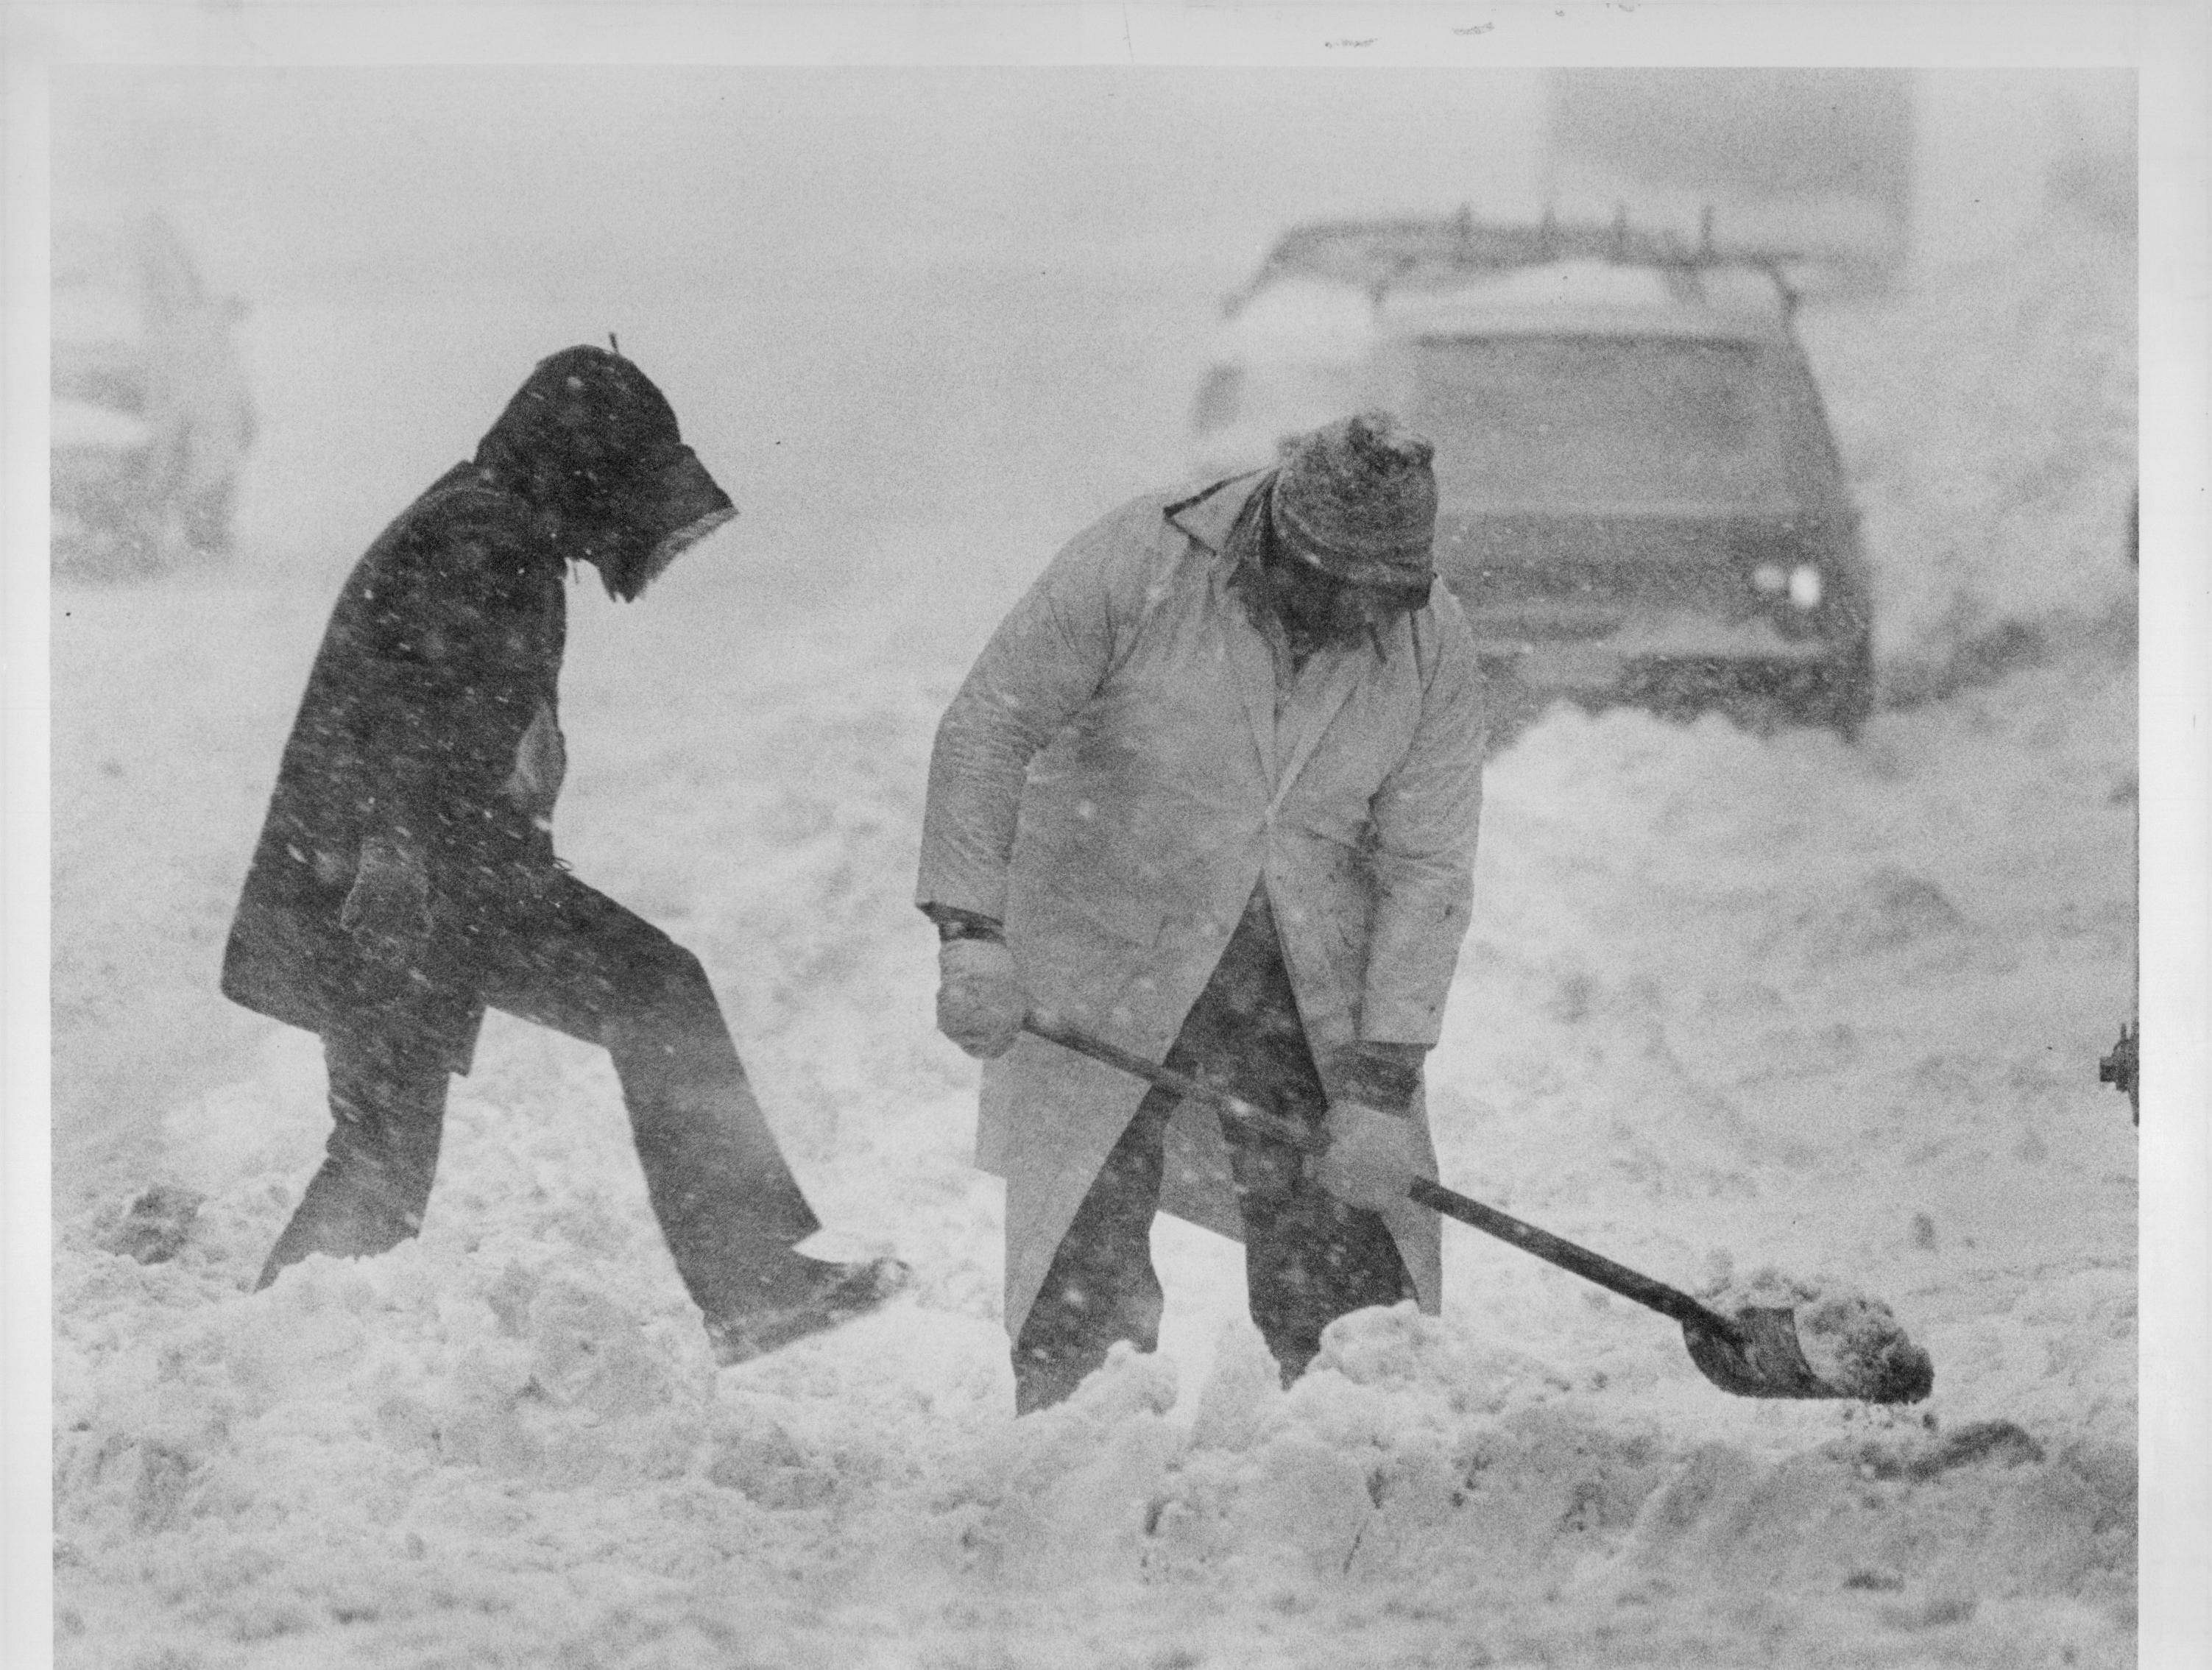 2. Snowfall totaled 32.7 inches from Feb. 27 to March 3, 1984. Here, people dig out a car on a city street.